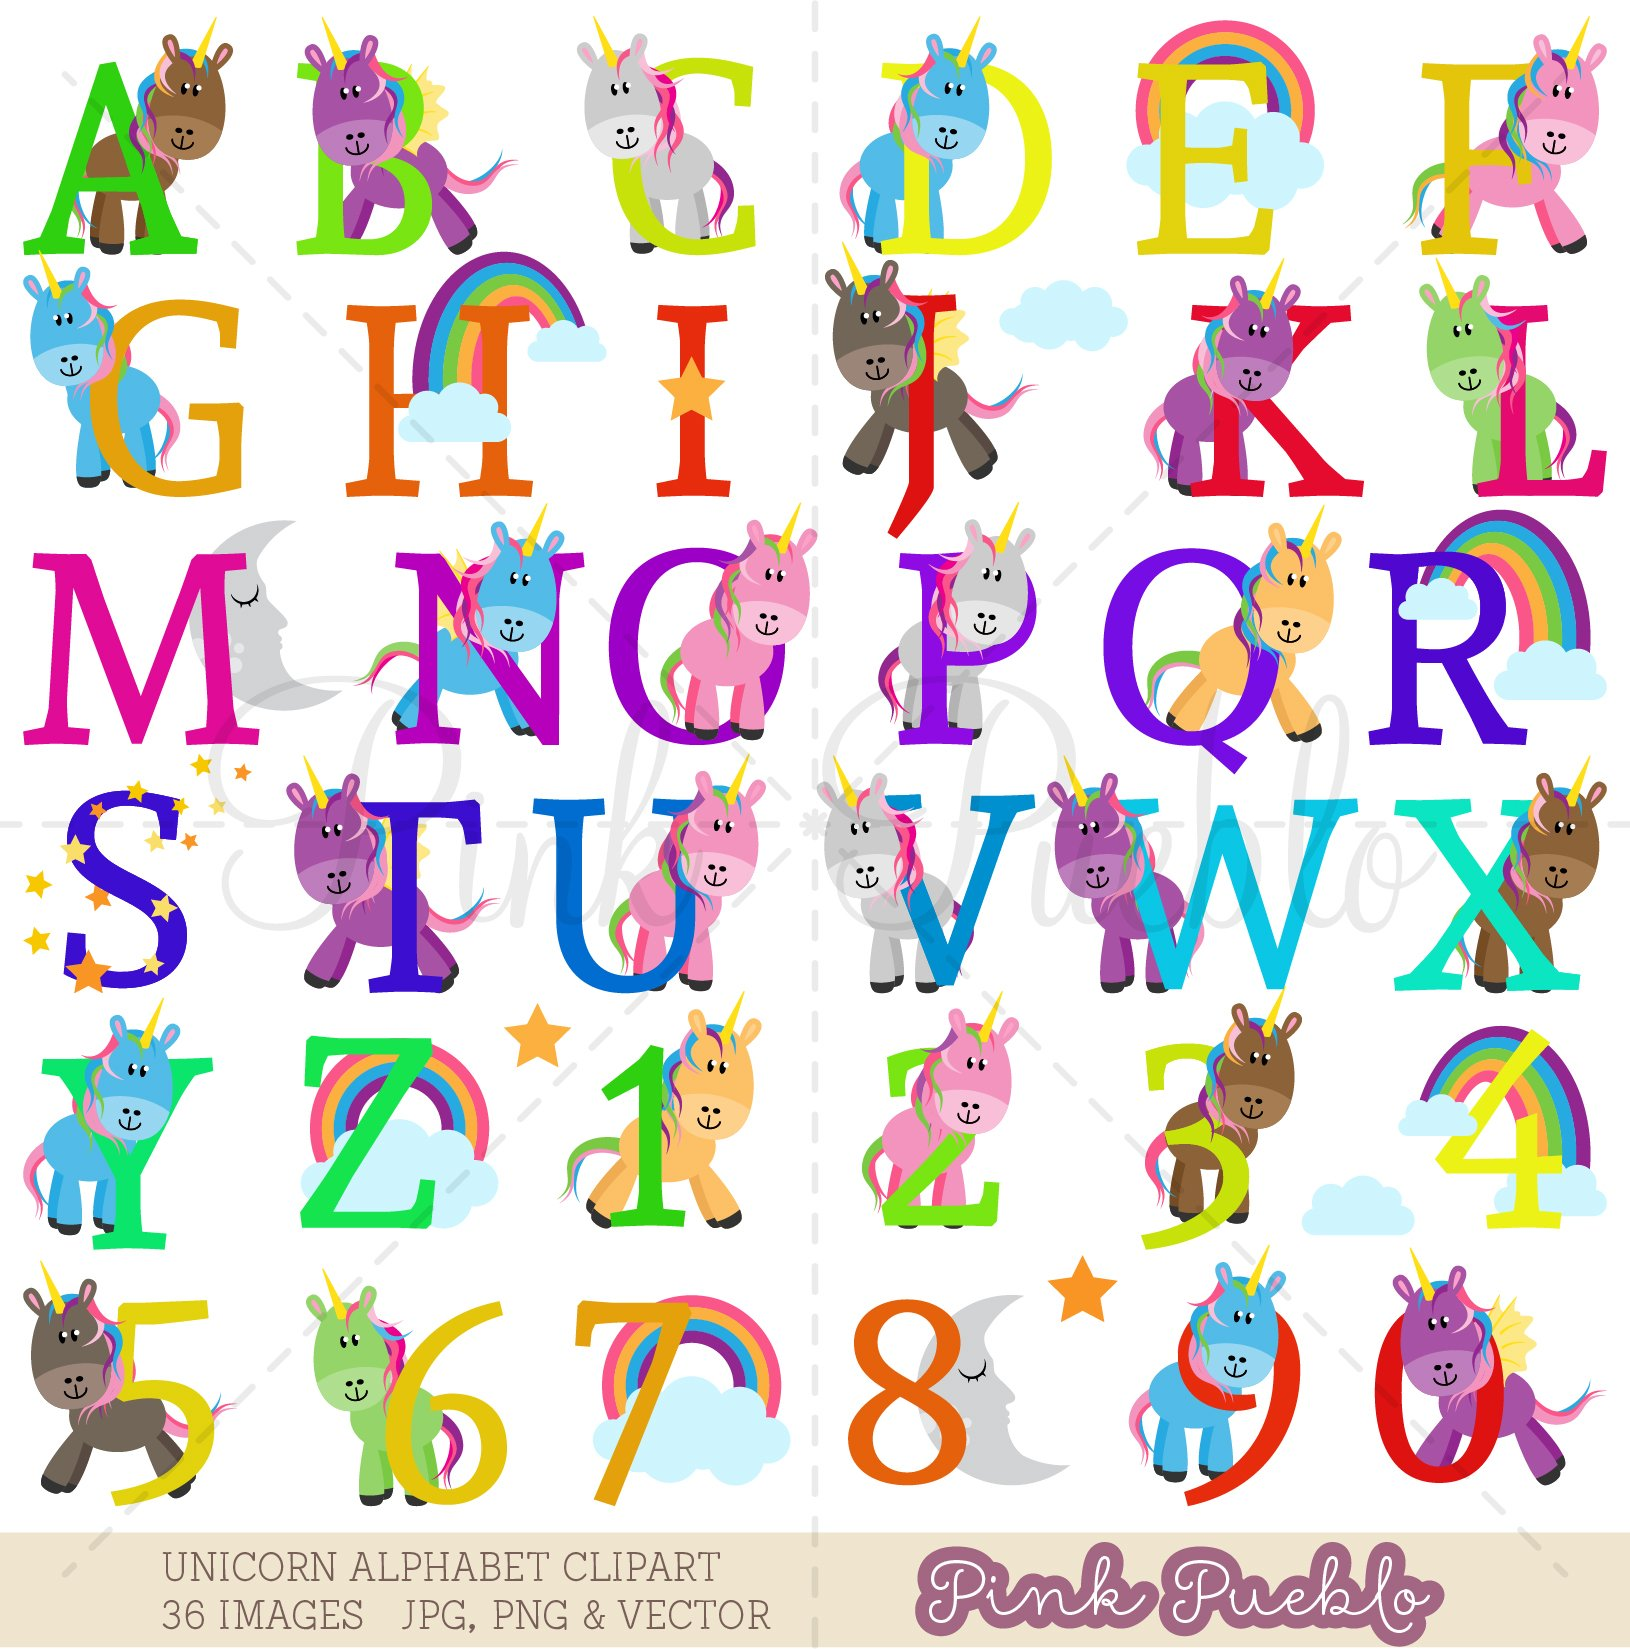 Images of alphabet clipart clip art black and white library Uppercase Unicorn Alphabet Clipart & Vectors clip art black and white library